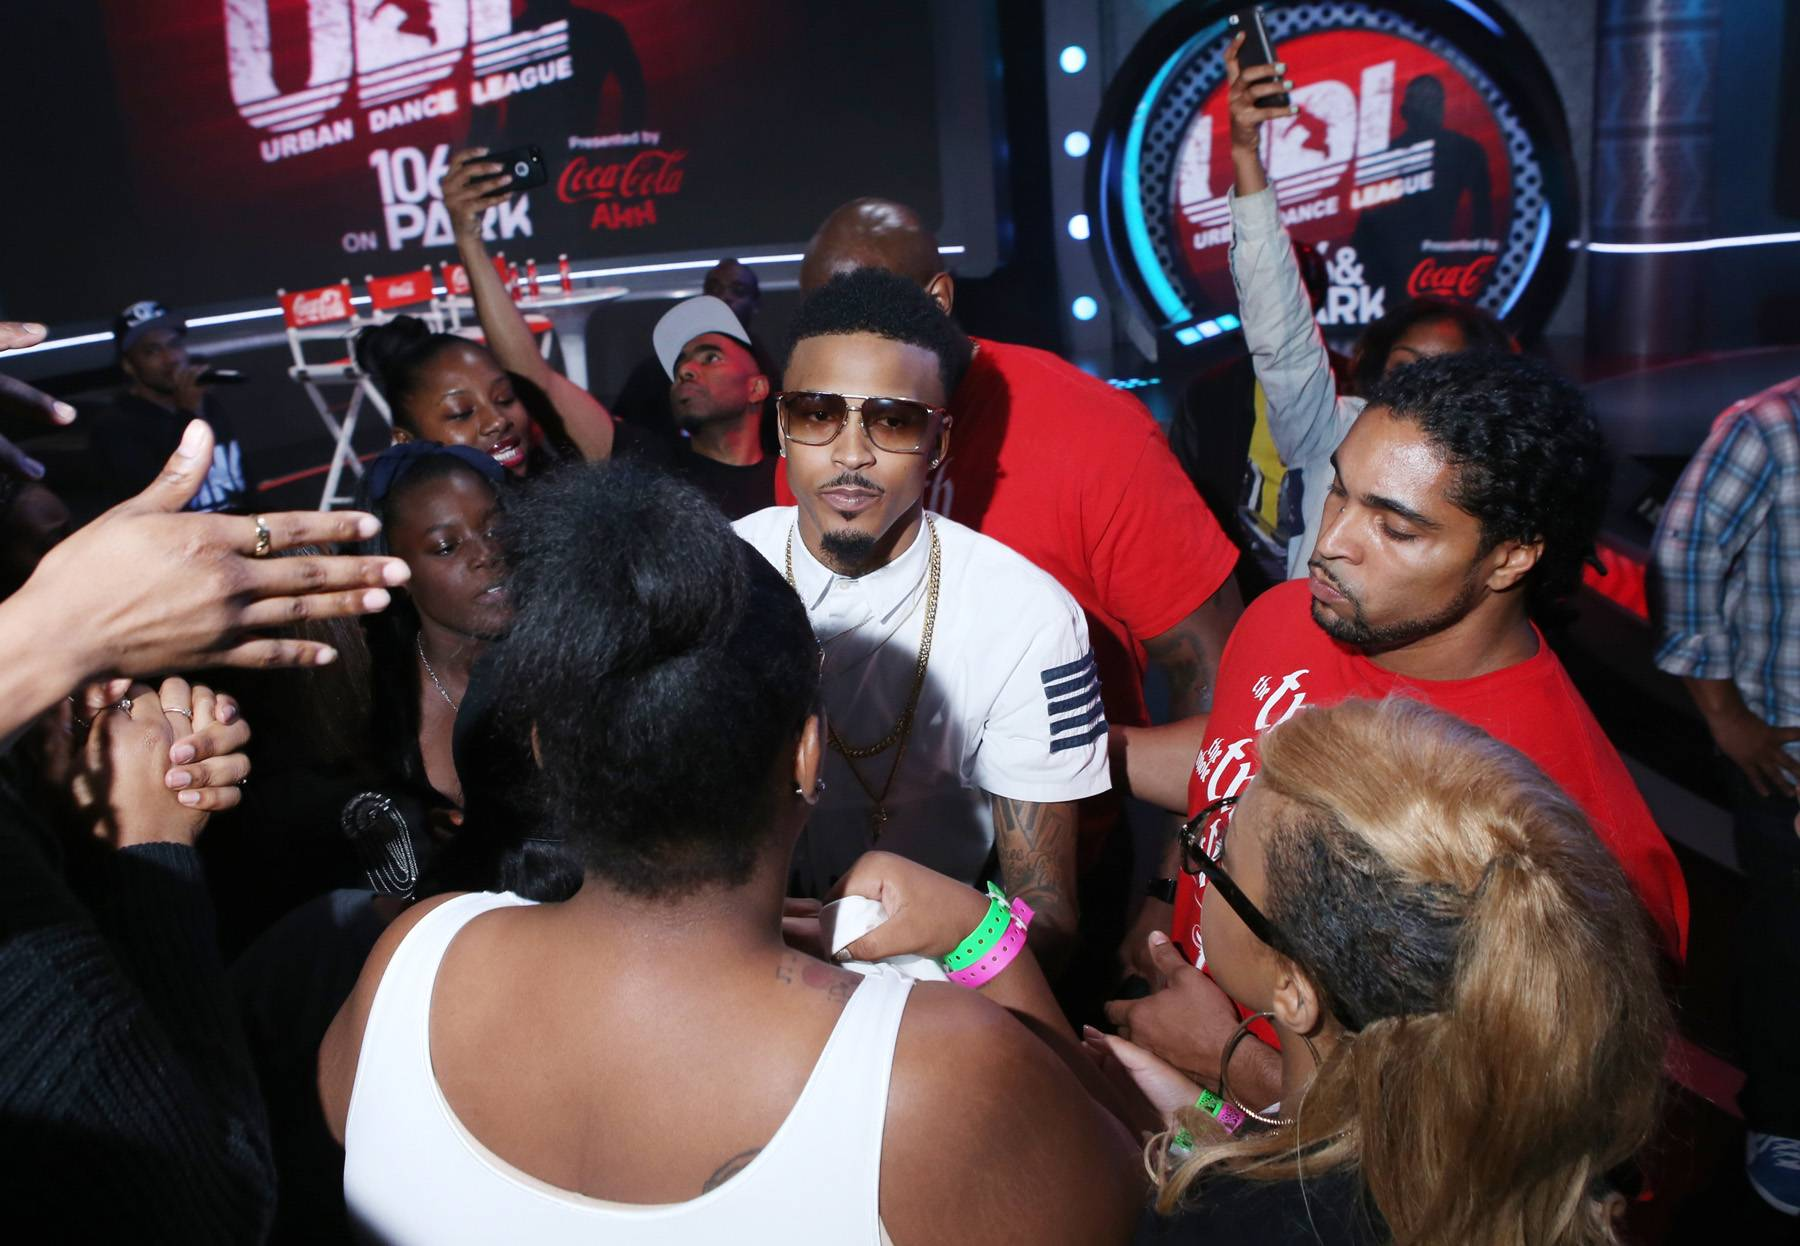 He Wants the Love - (Photo: Bennett Raglin/BET/Getty Images for BET)